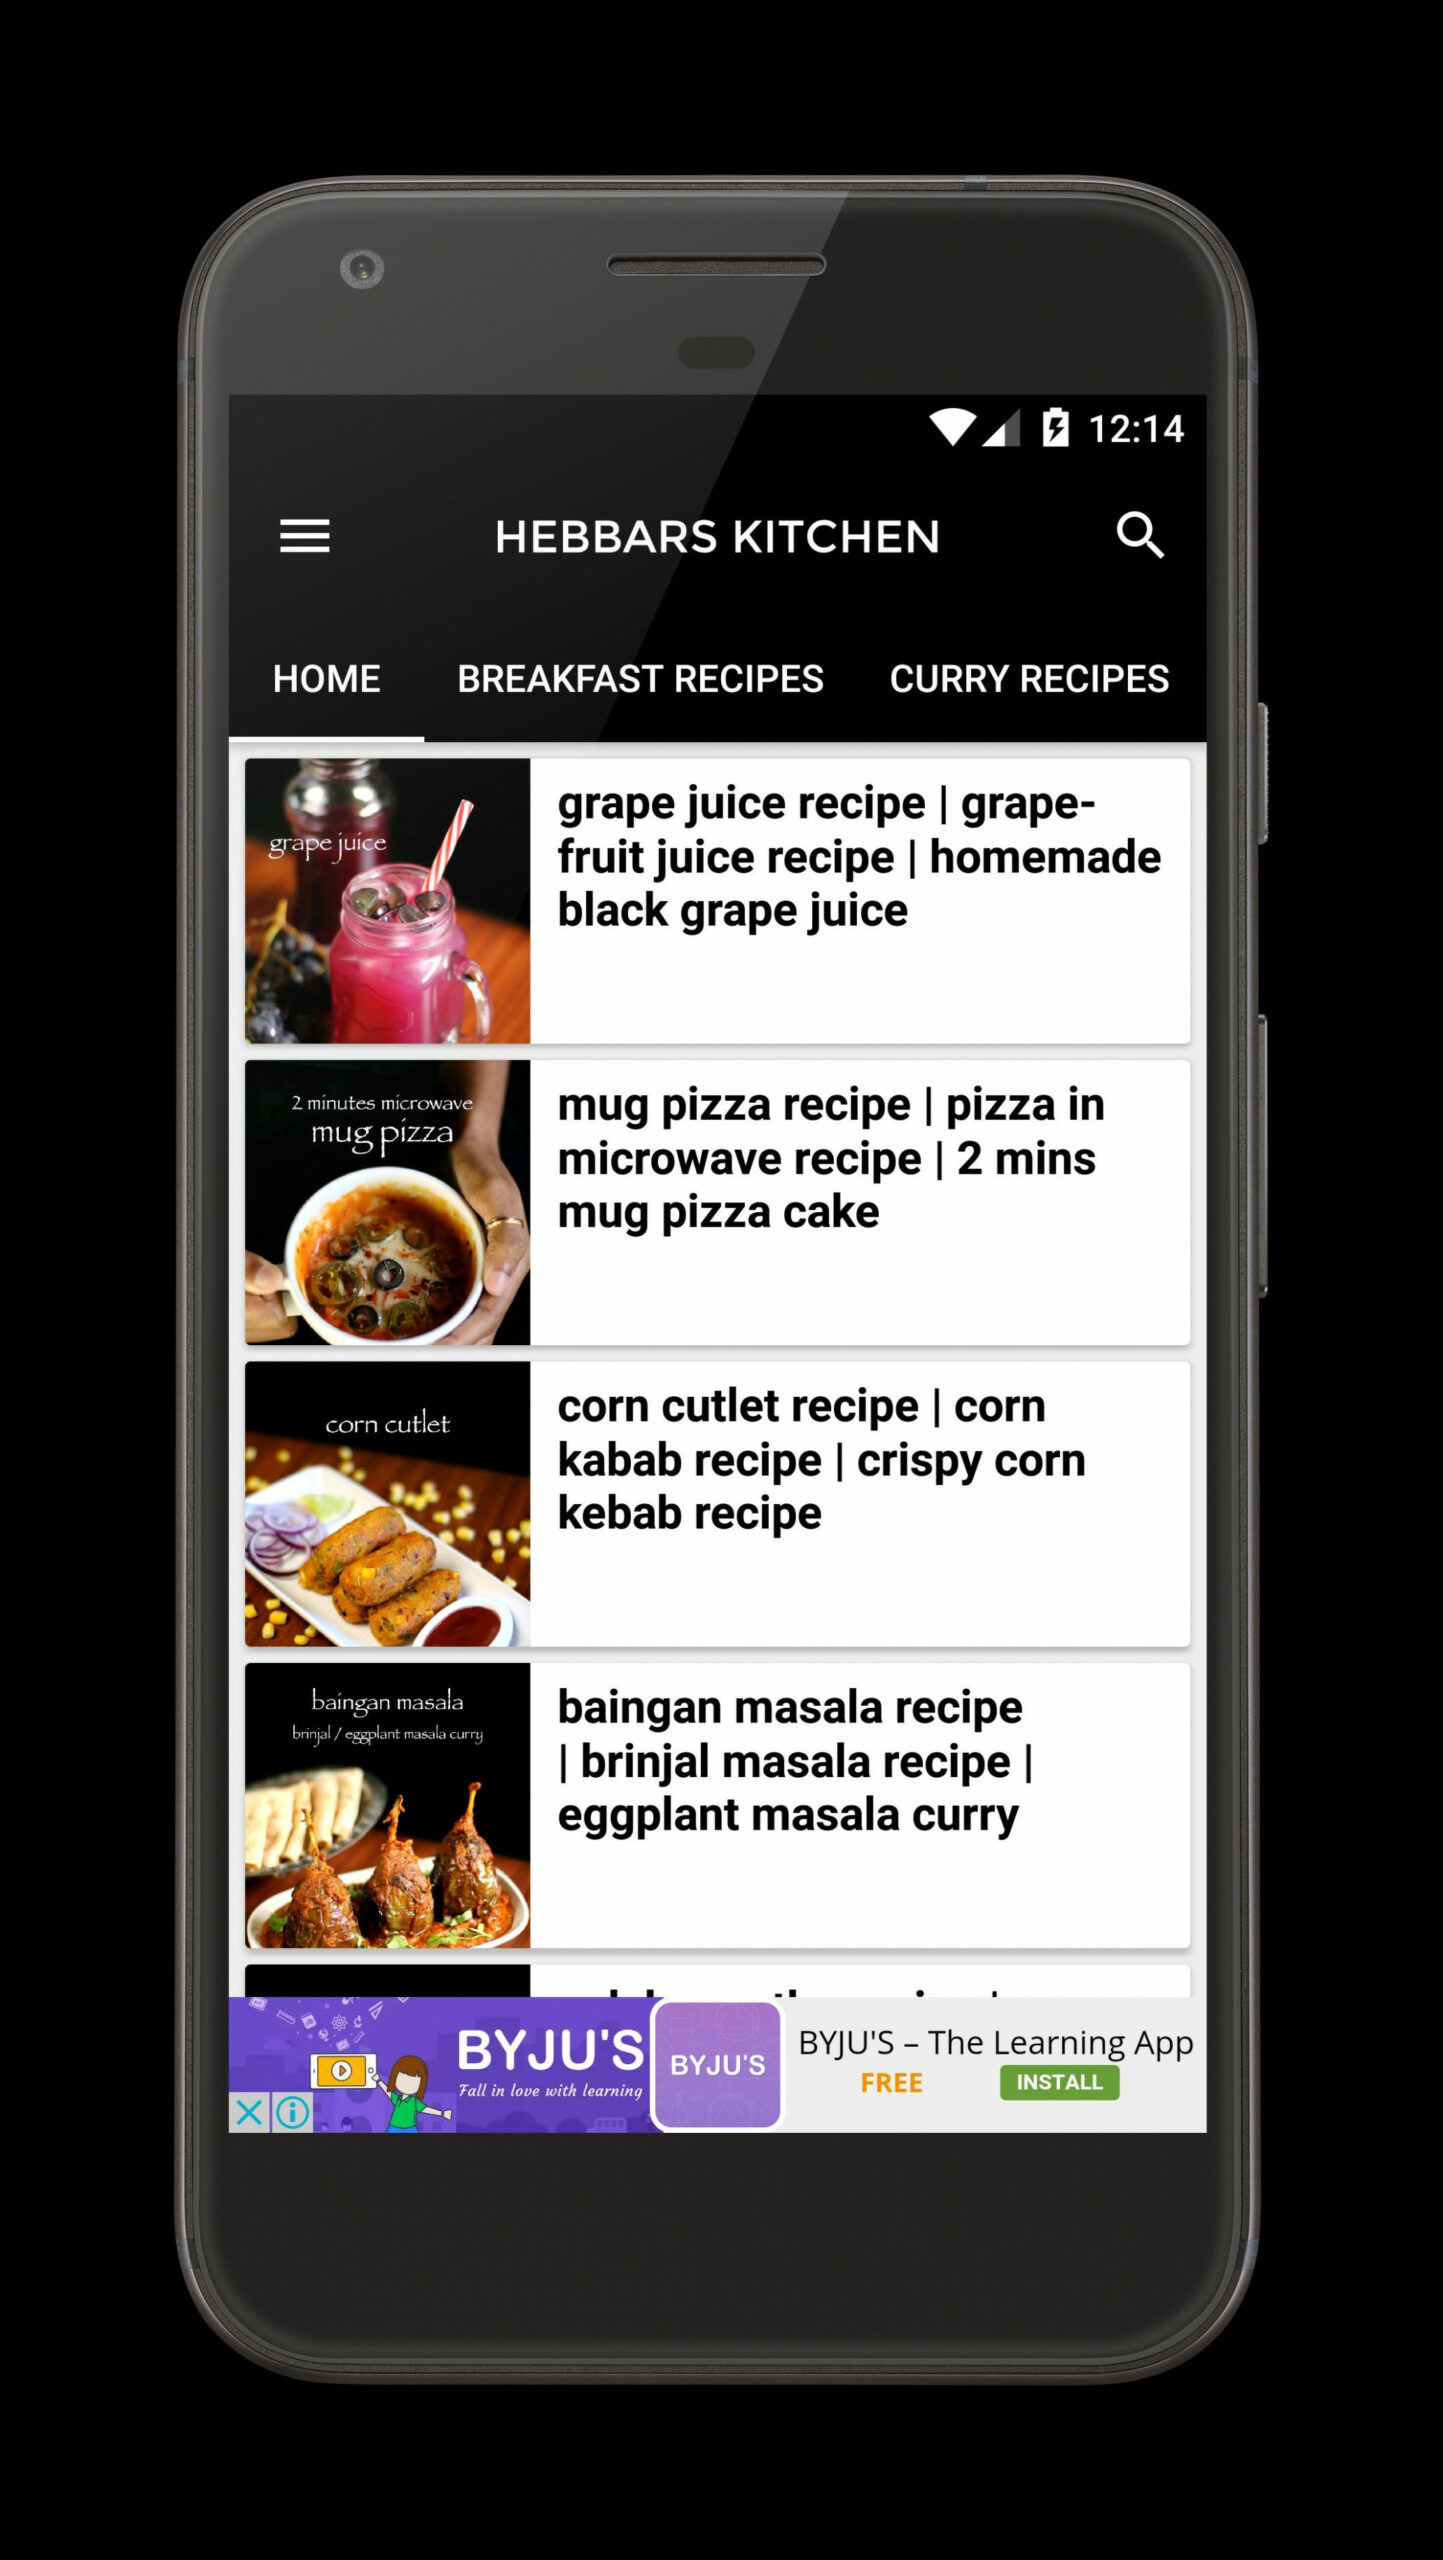 Hebbars kitchen für Android - APK herunterladen - dinner recipes by hebbars kitchen